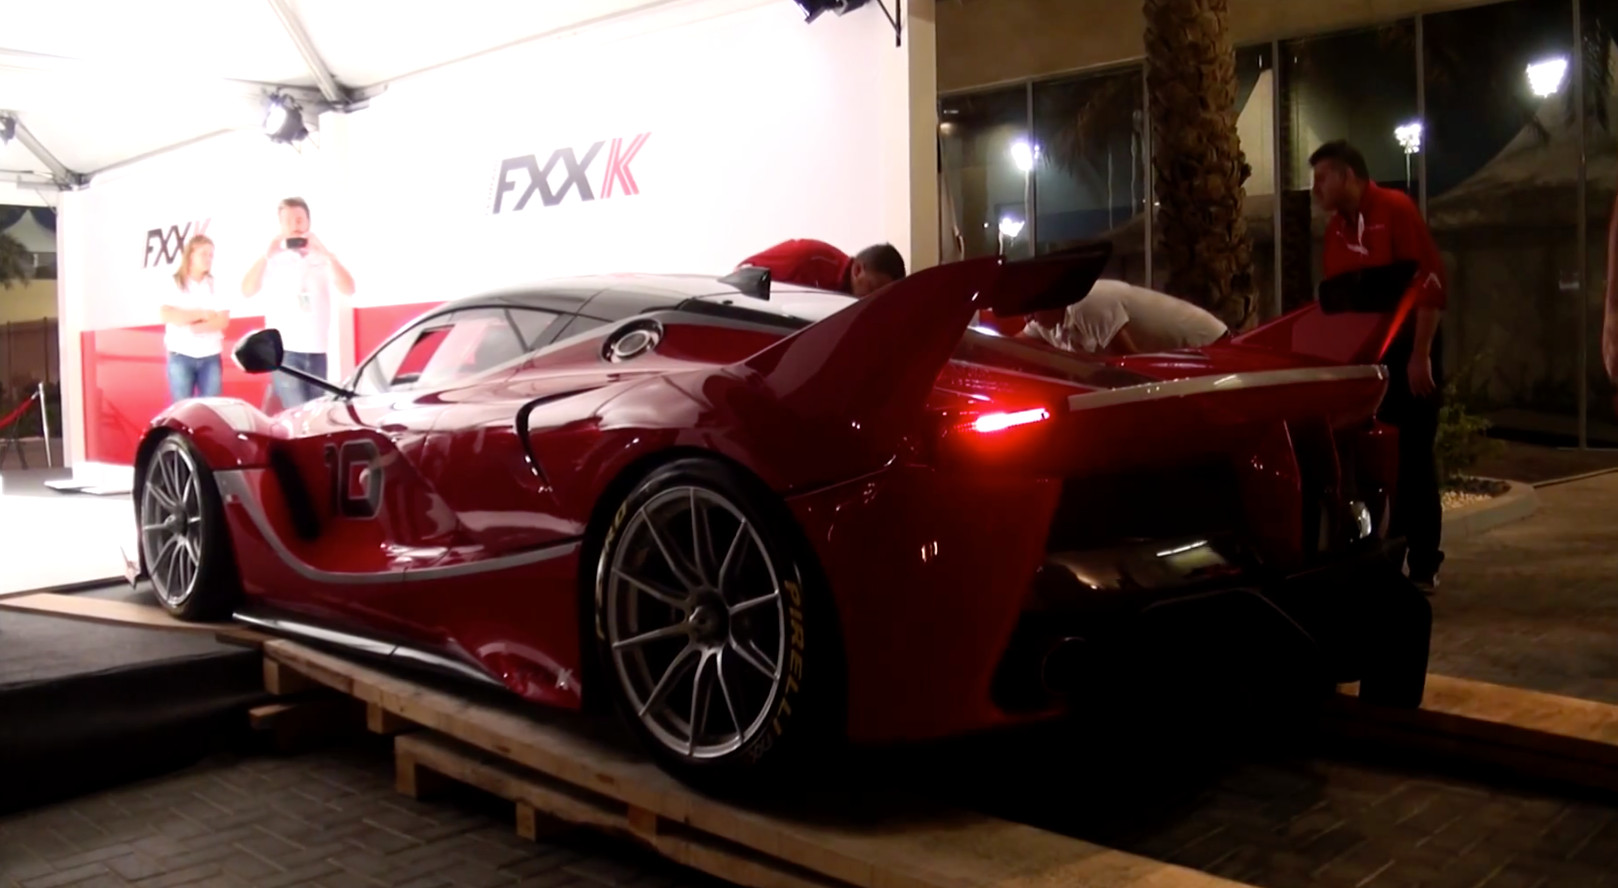 Sights And Sounds Of The Ferrari Fxx K